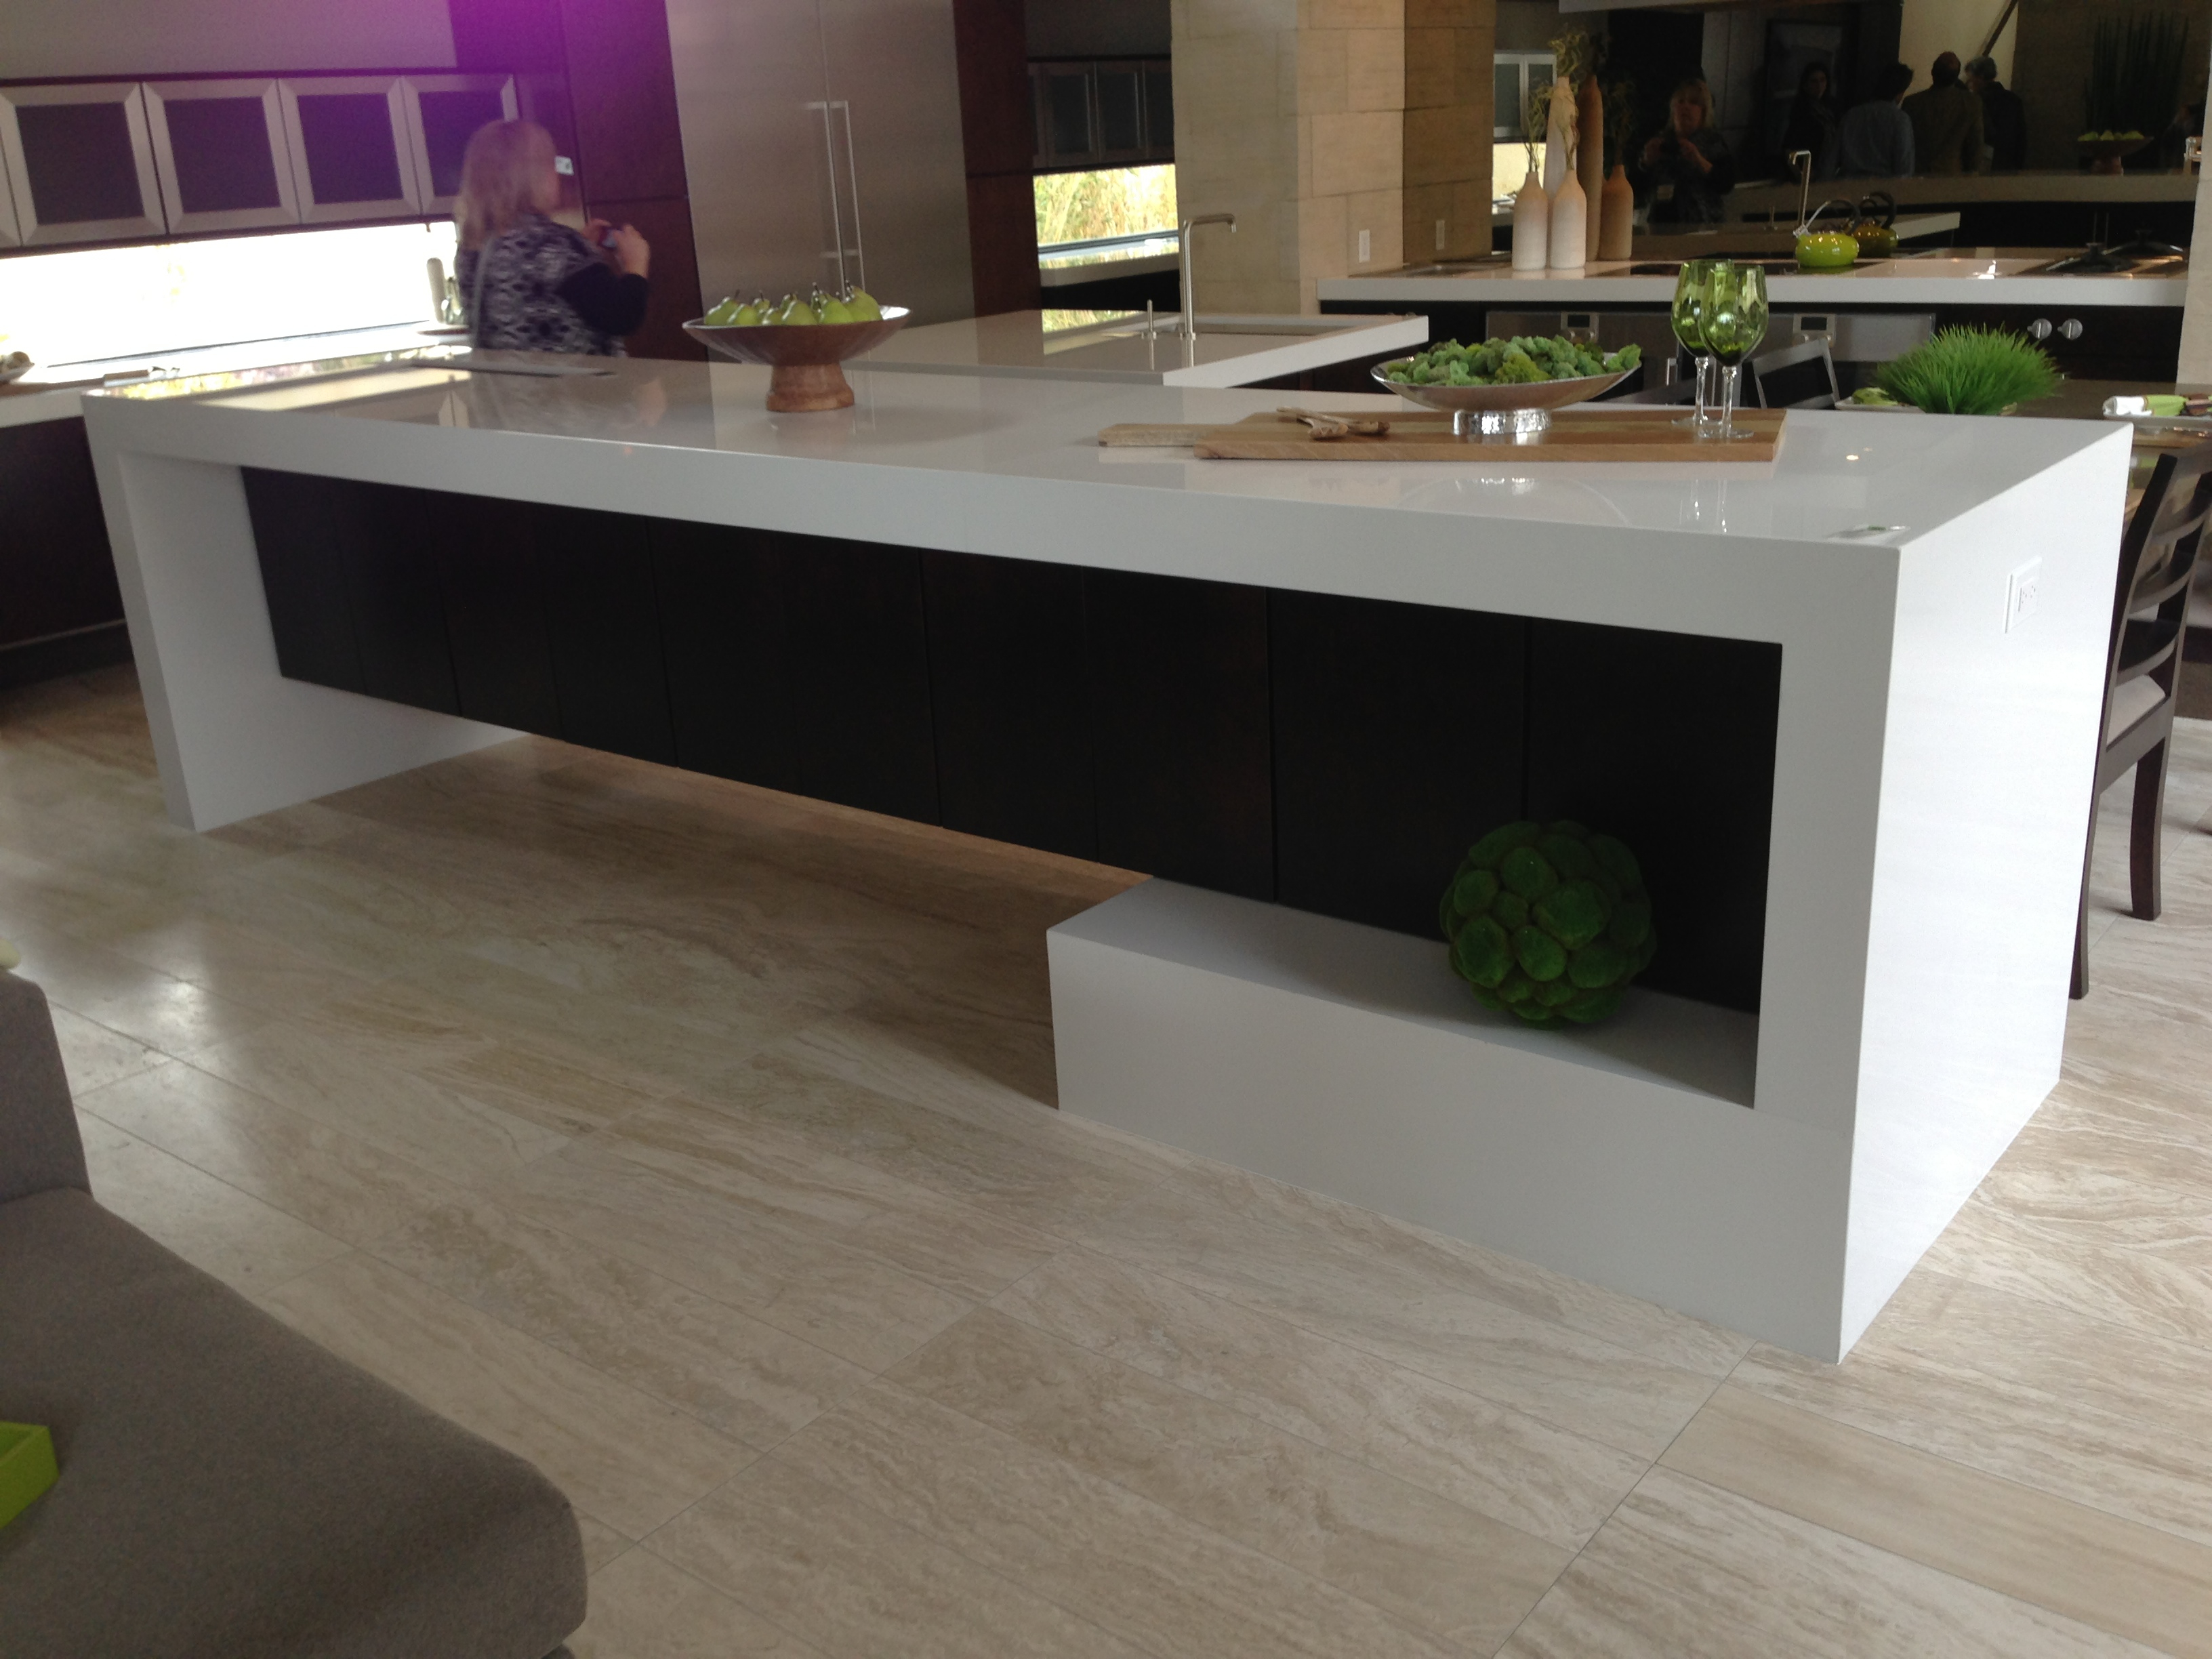 The Kitchen Island Curves And Wraps In 2013